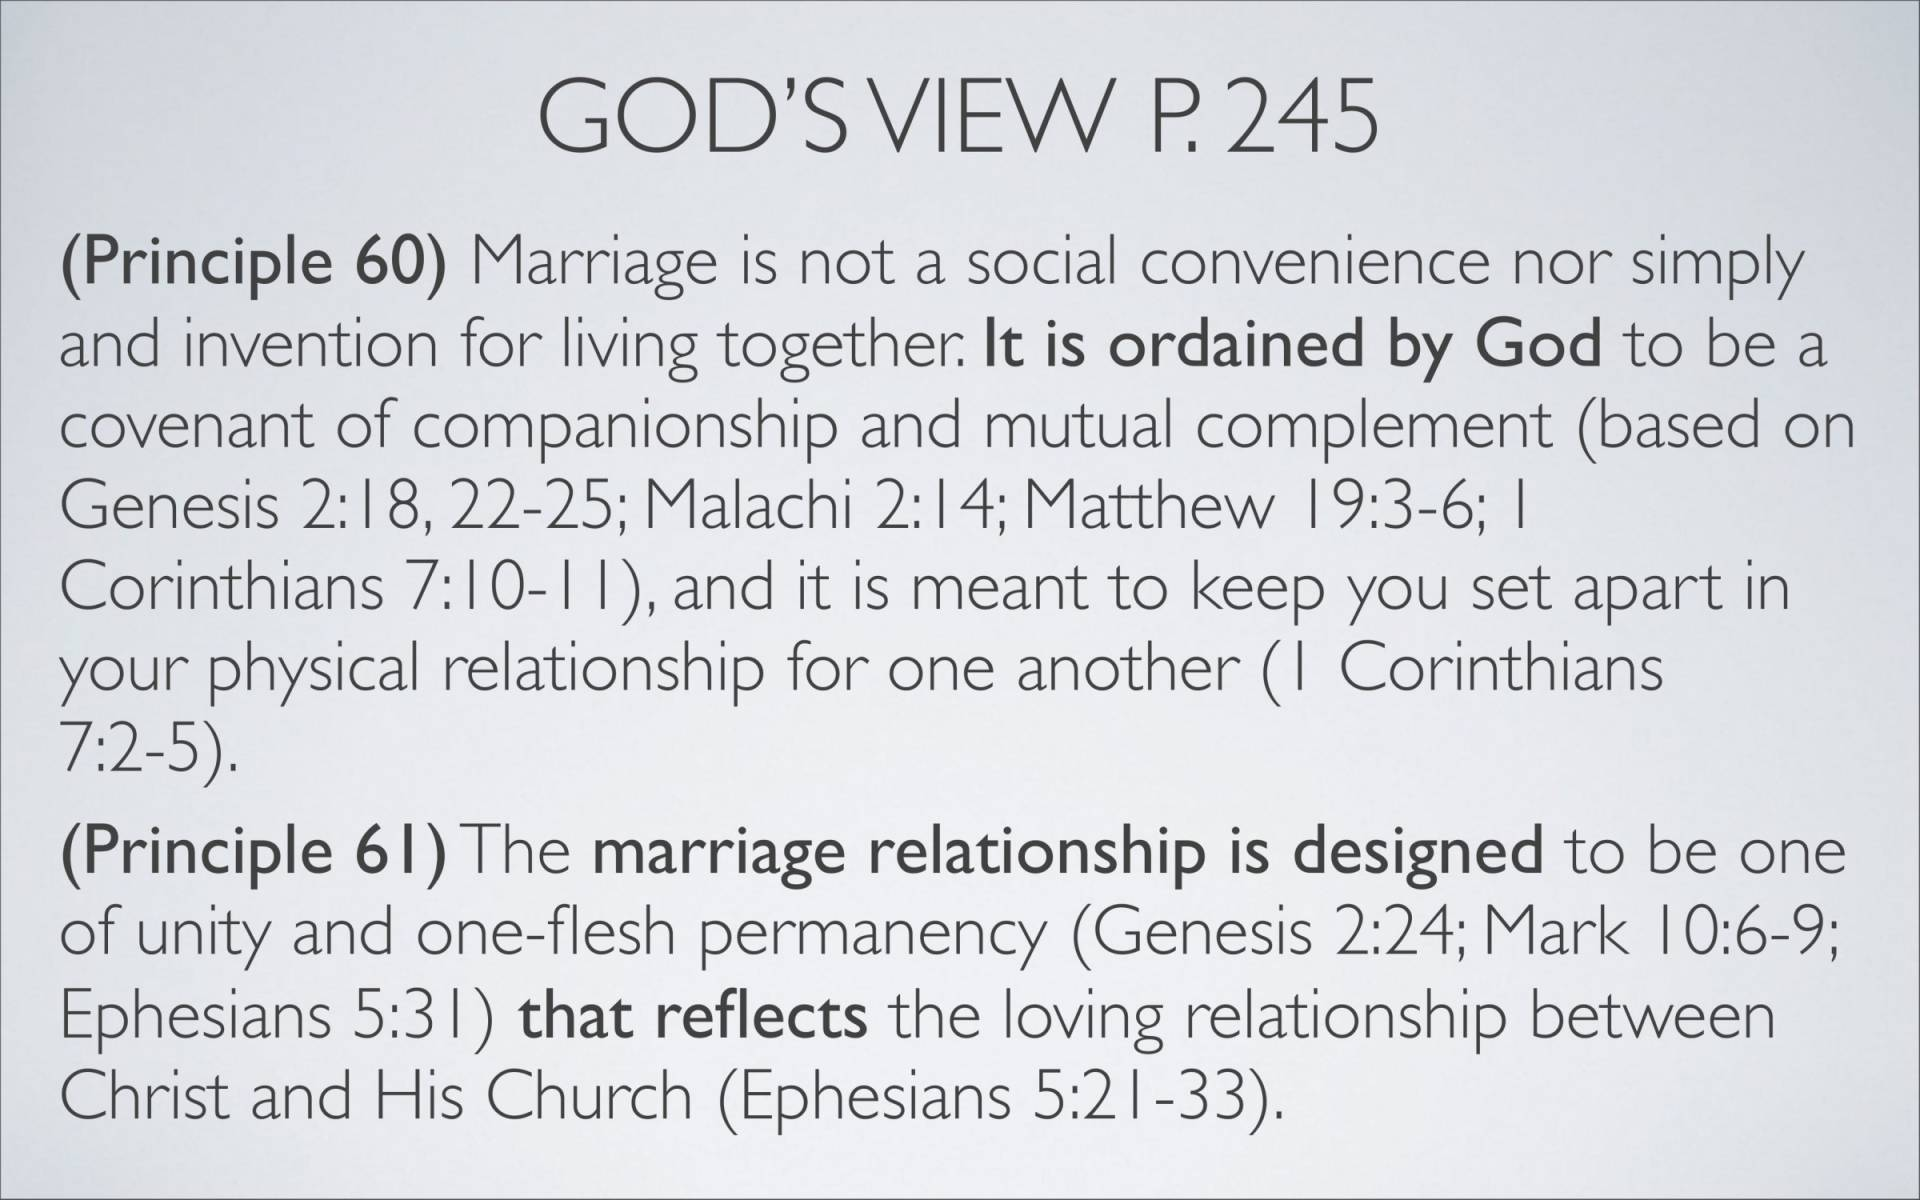 BC&D-37 - Lesson 15-1 - The Marriage Relationship - Husbands-05